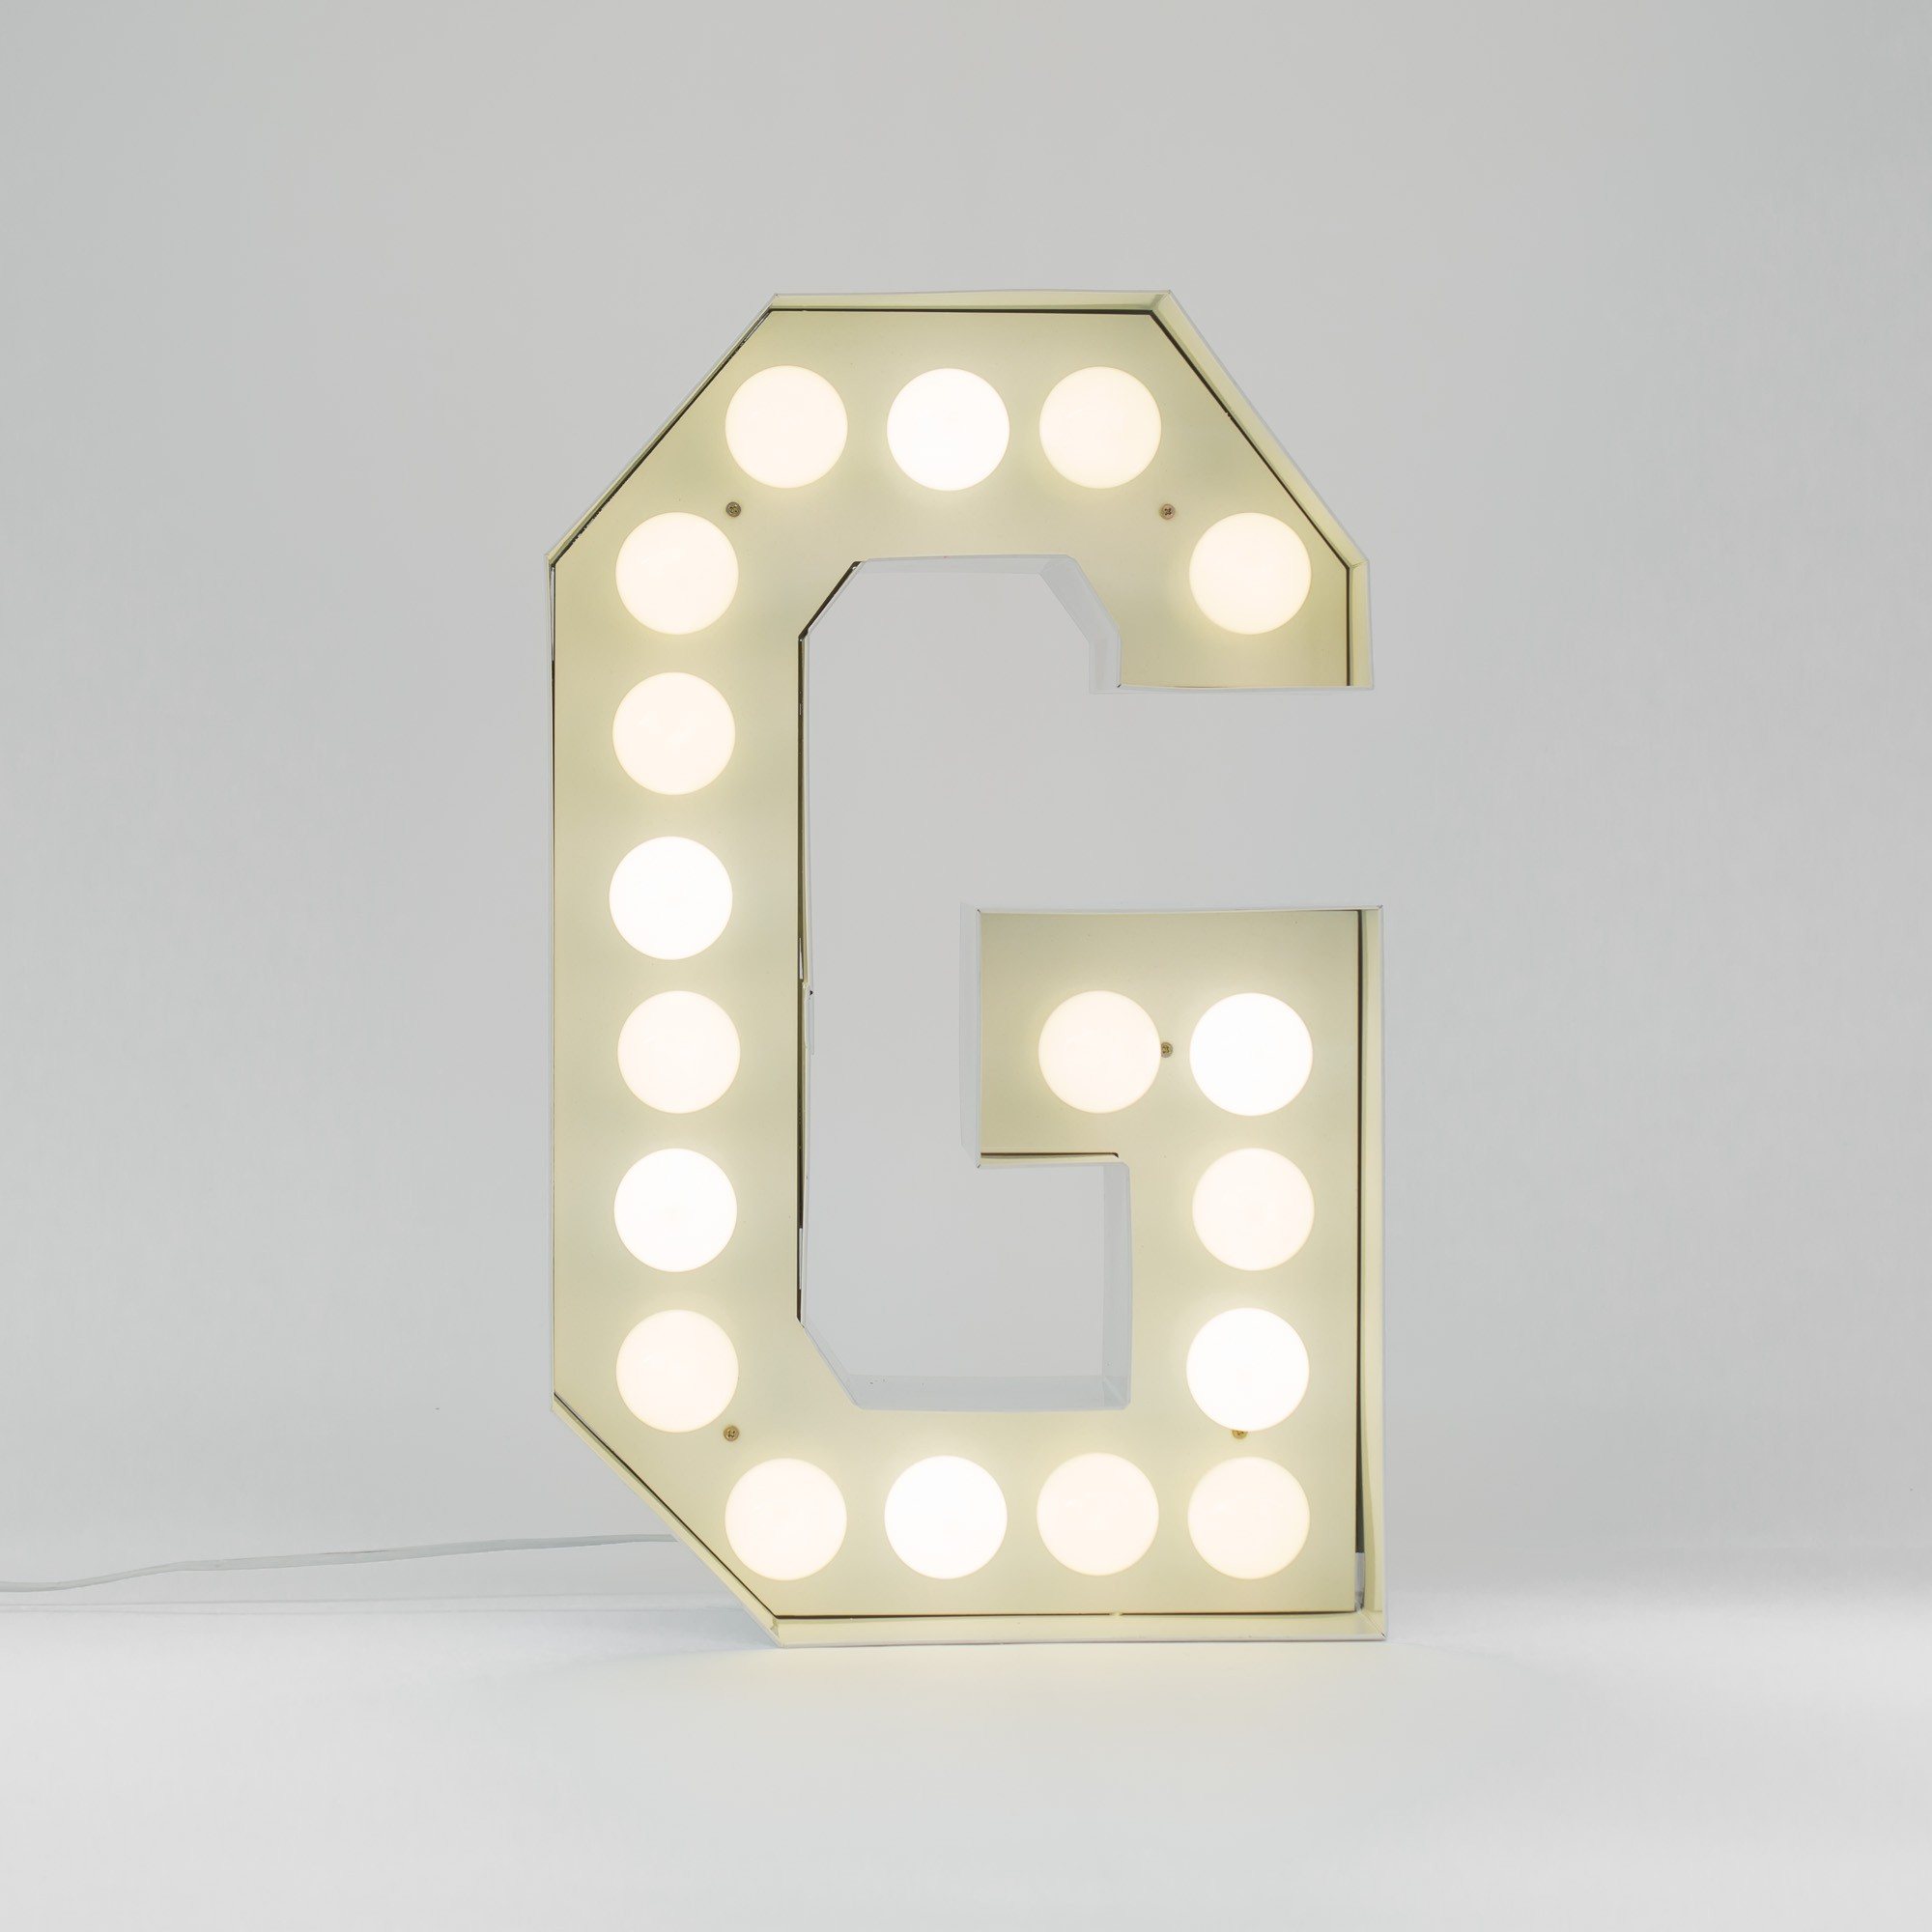 Lettere Luminose Seletti Seletti Vegaz G Lettera Luminosa Led Che Luce Lighting Project